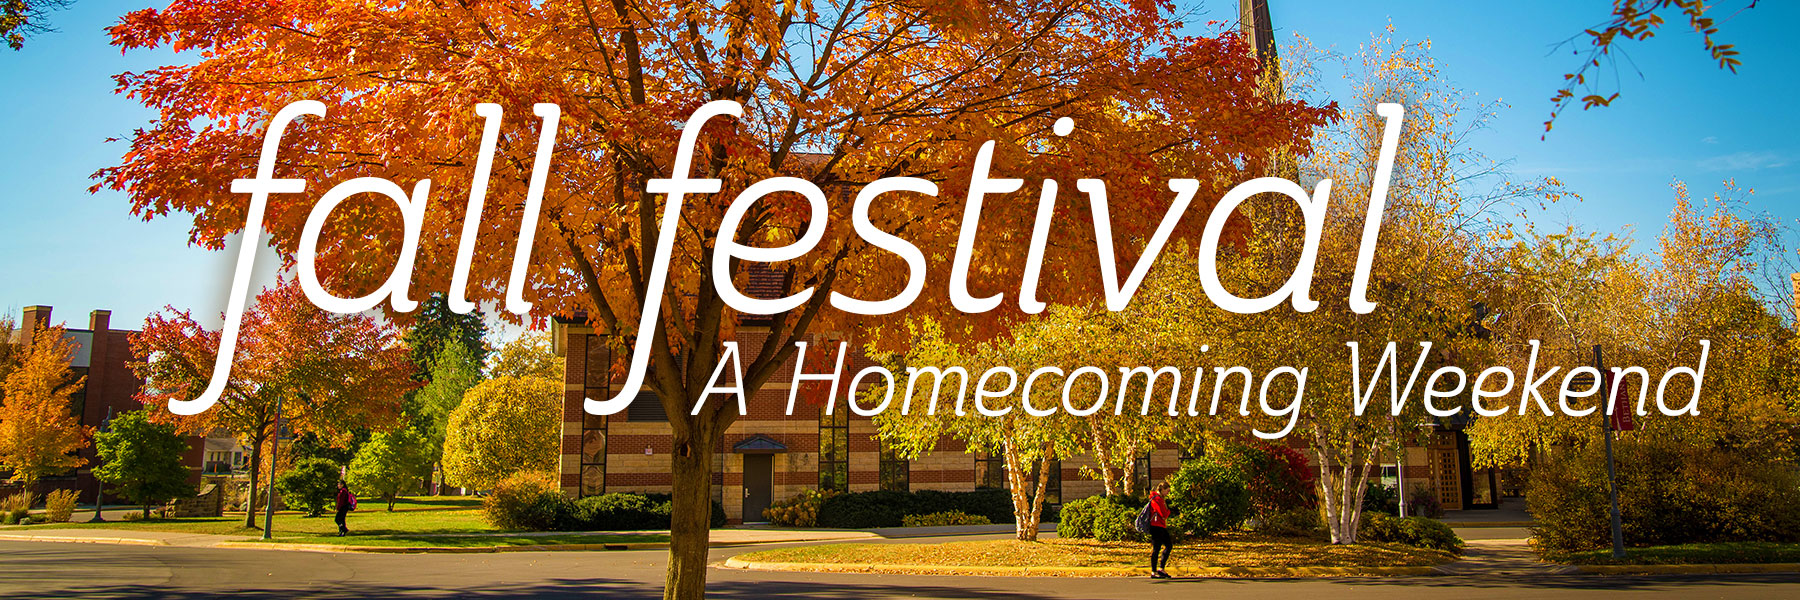 fall festival - a homecoming weekend